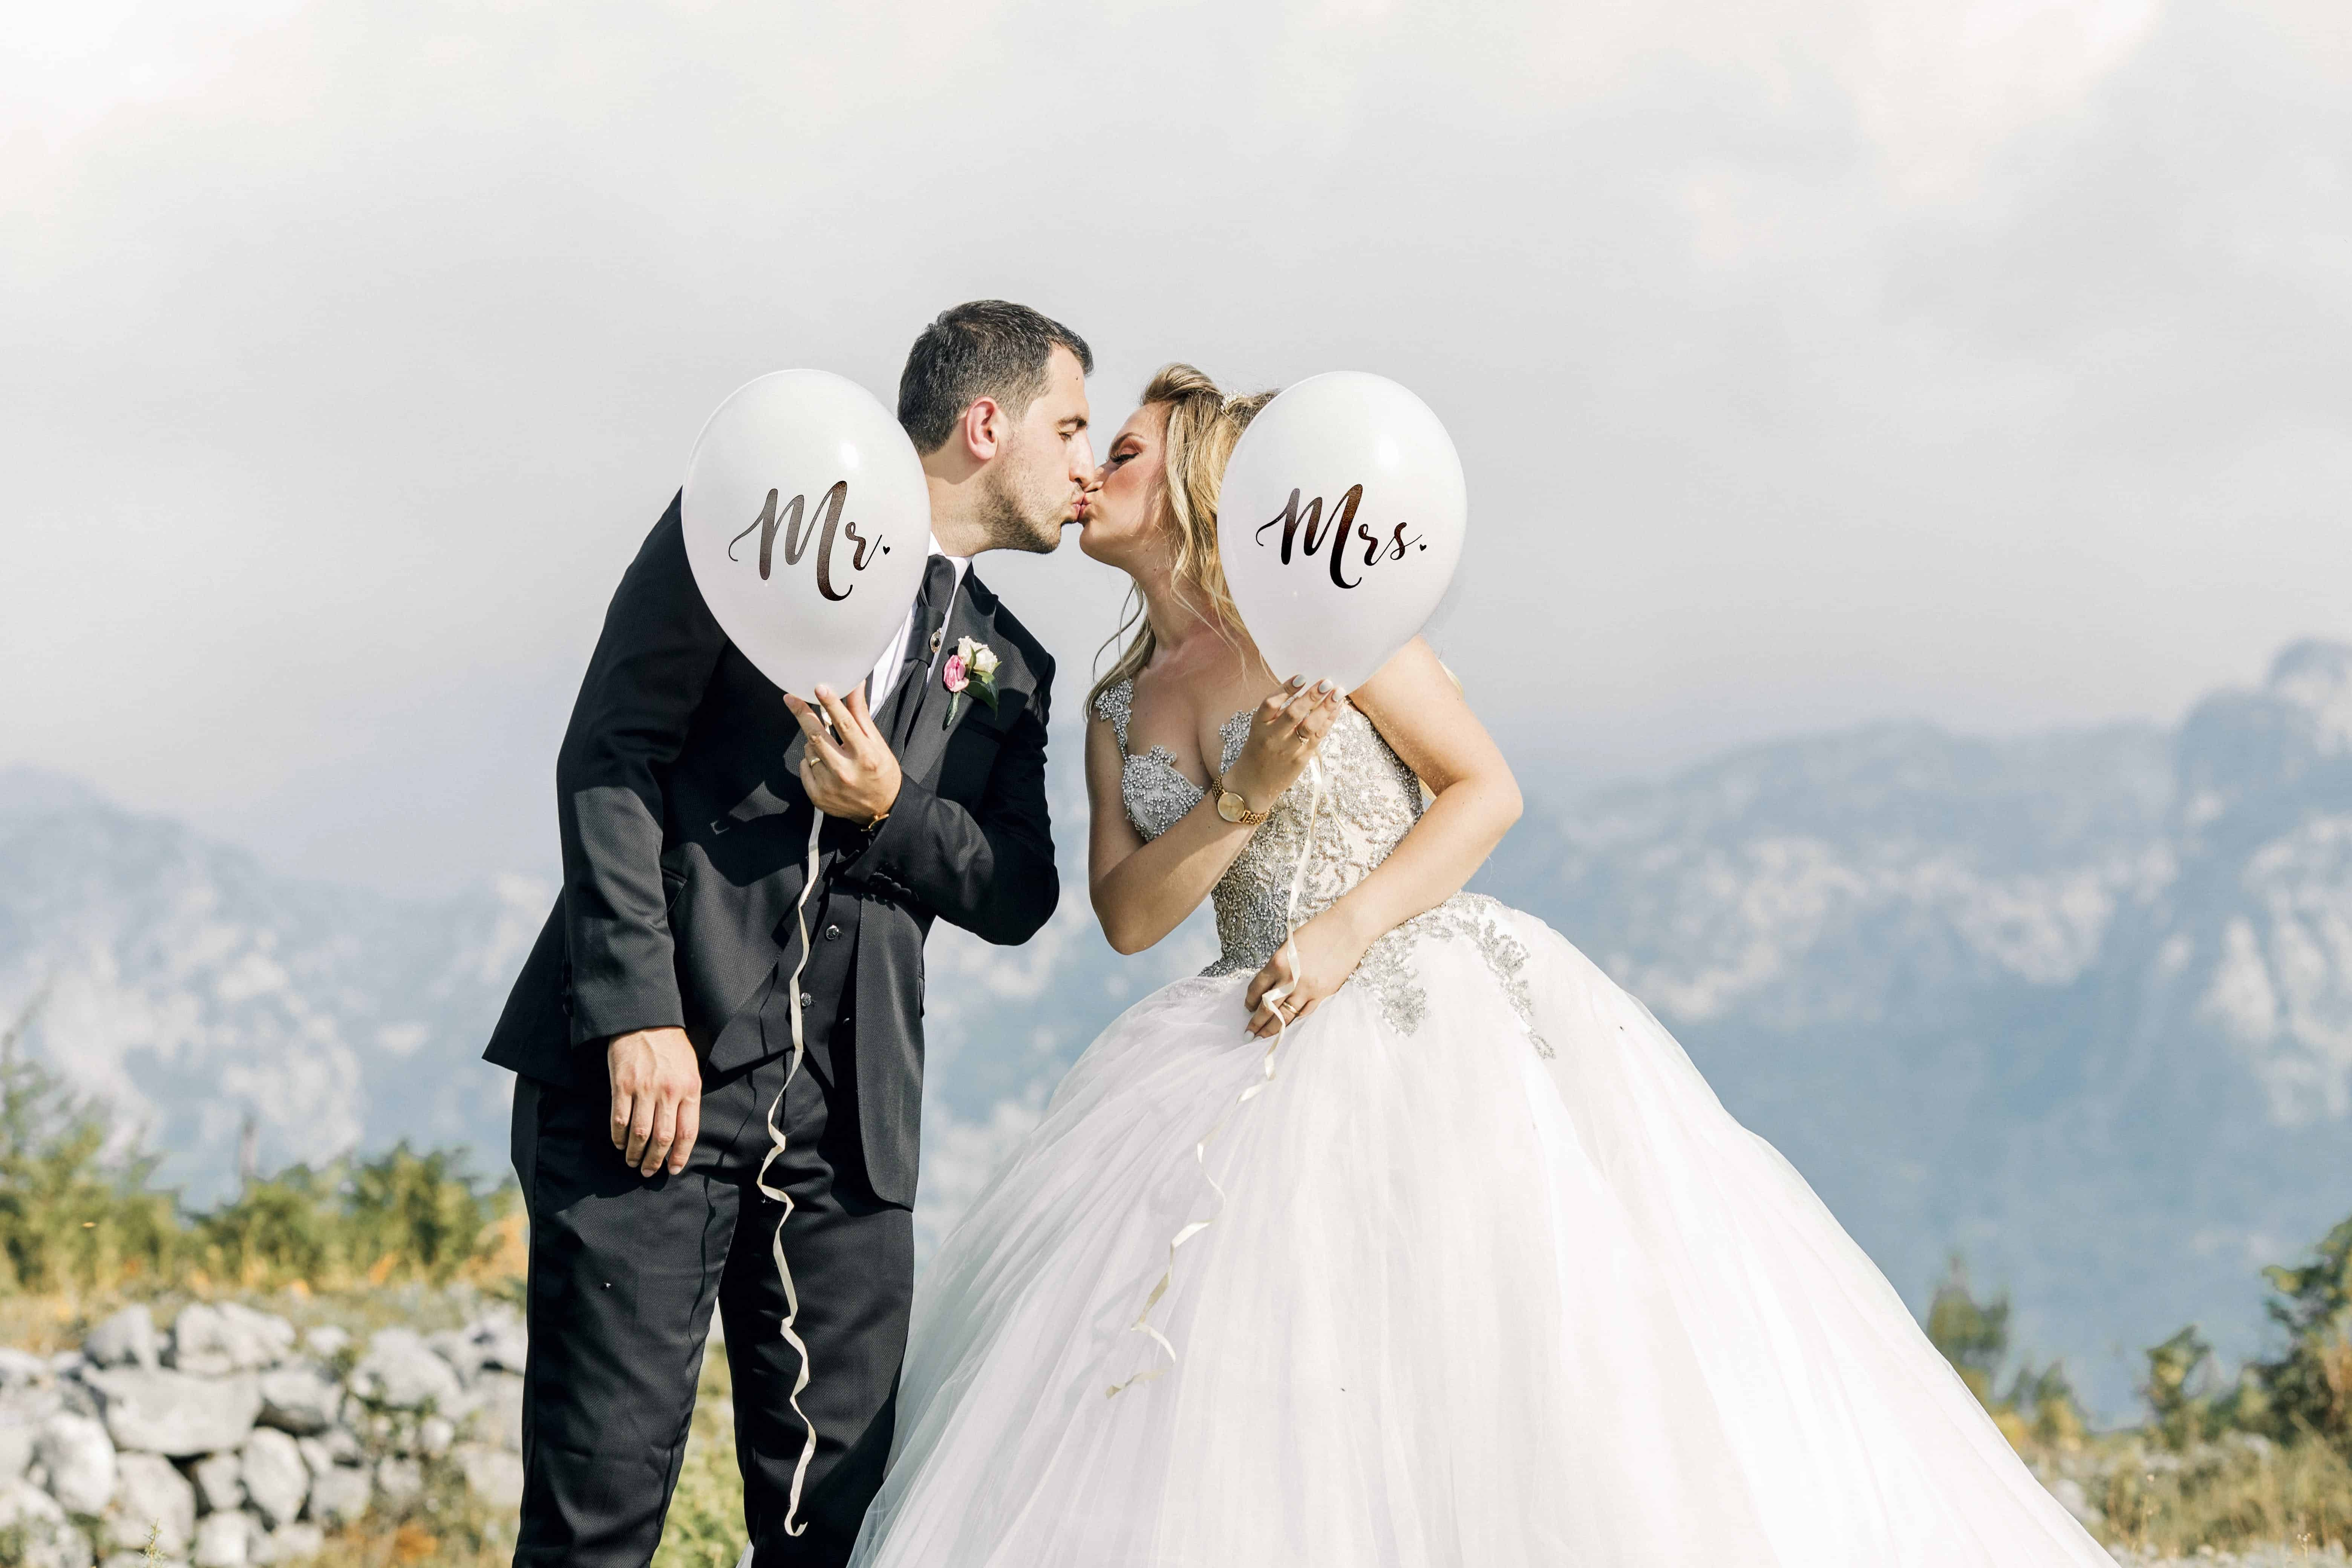 Man and Woman Kissing While Holding Balloons